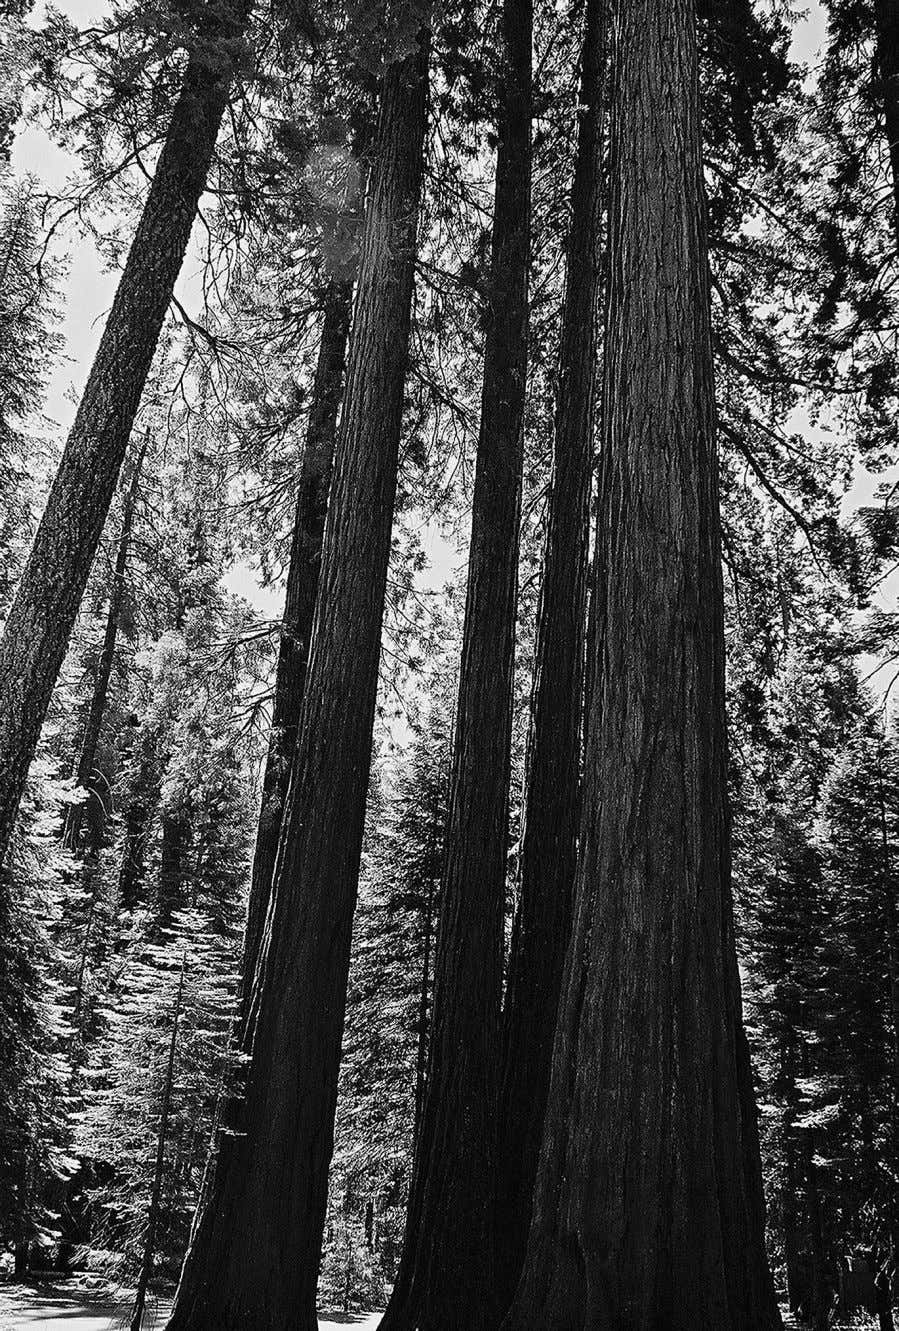 Figure 4.1 Sequoiadendron trees at maturity are the most massive living organisms on Earth. They